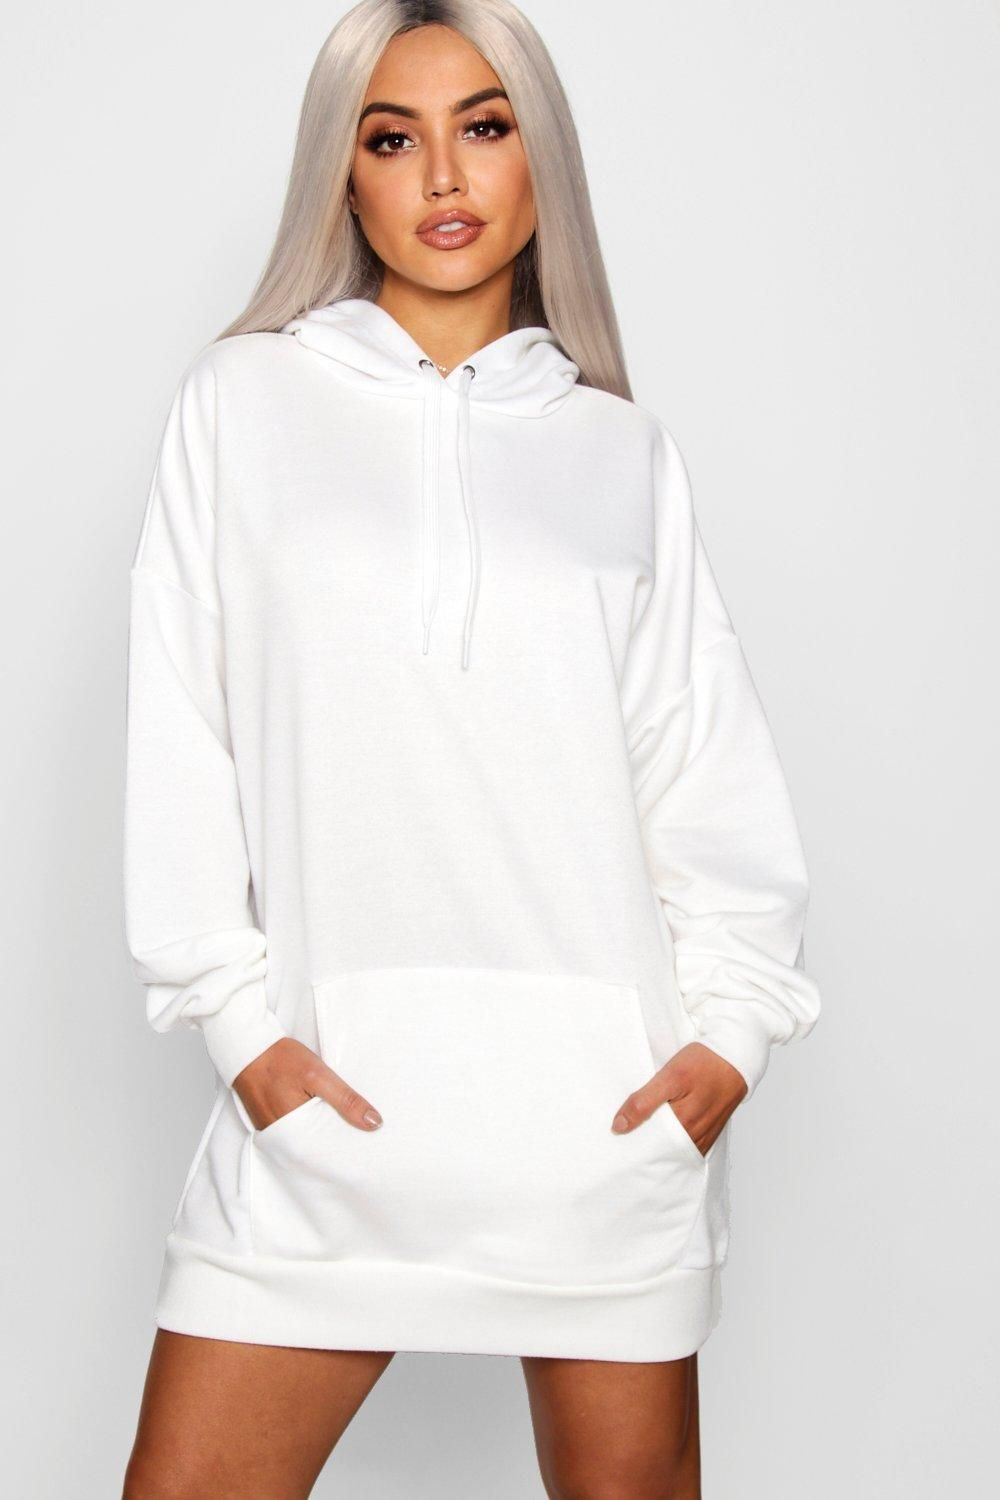 New Lola The Perfect Oversized Hooded Sweat Dress Online Enjoy The Absolute Best In Womens Dress Sweatshirt Dress Hooded Sweatshirt Dress Hoodie Dress Outfit [ 1500 x 1000 Pixel ]